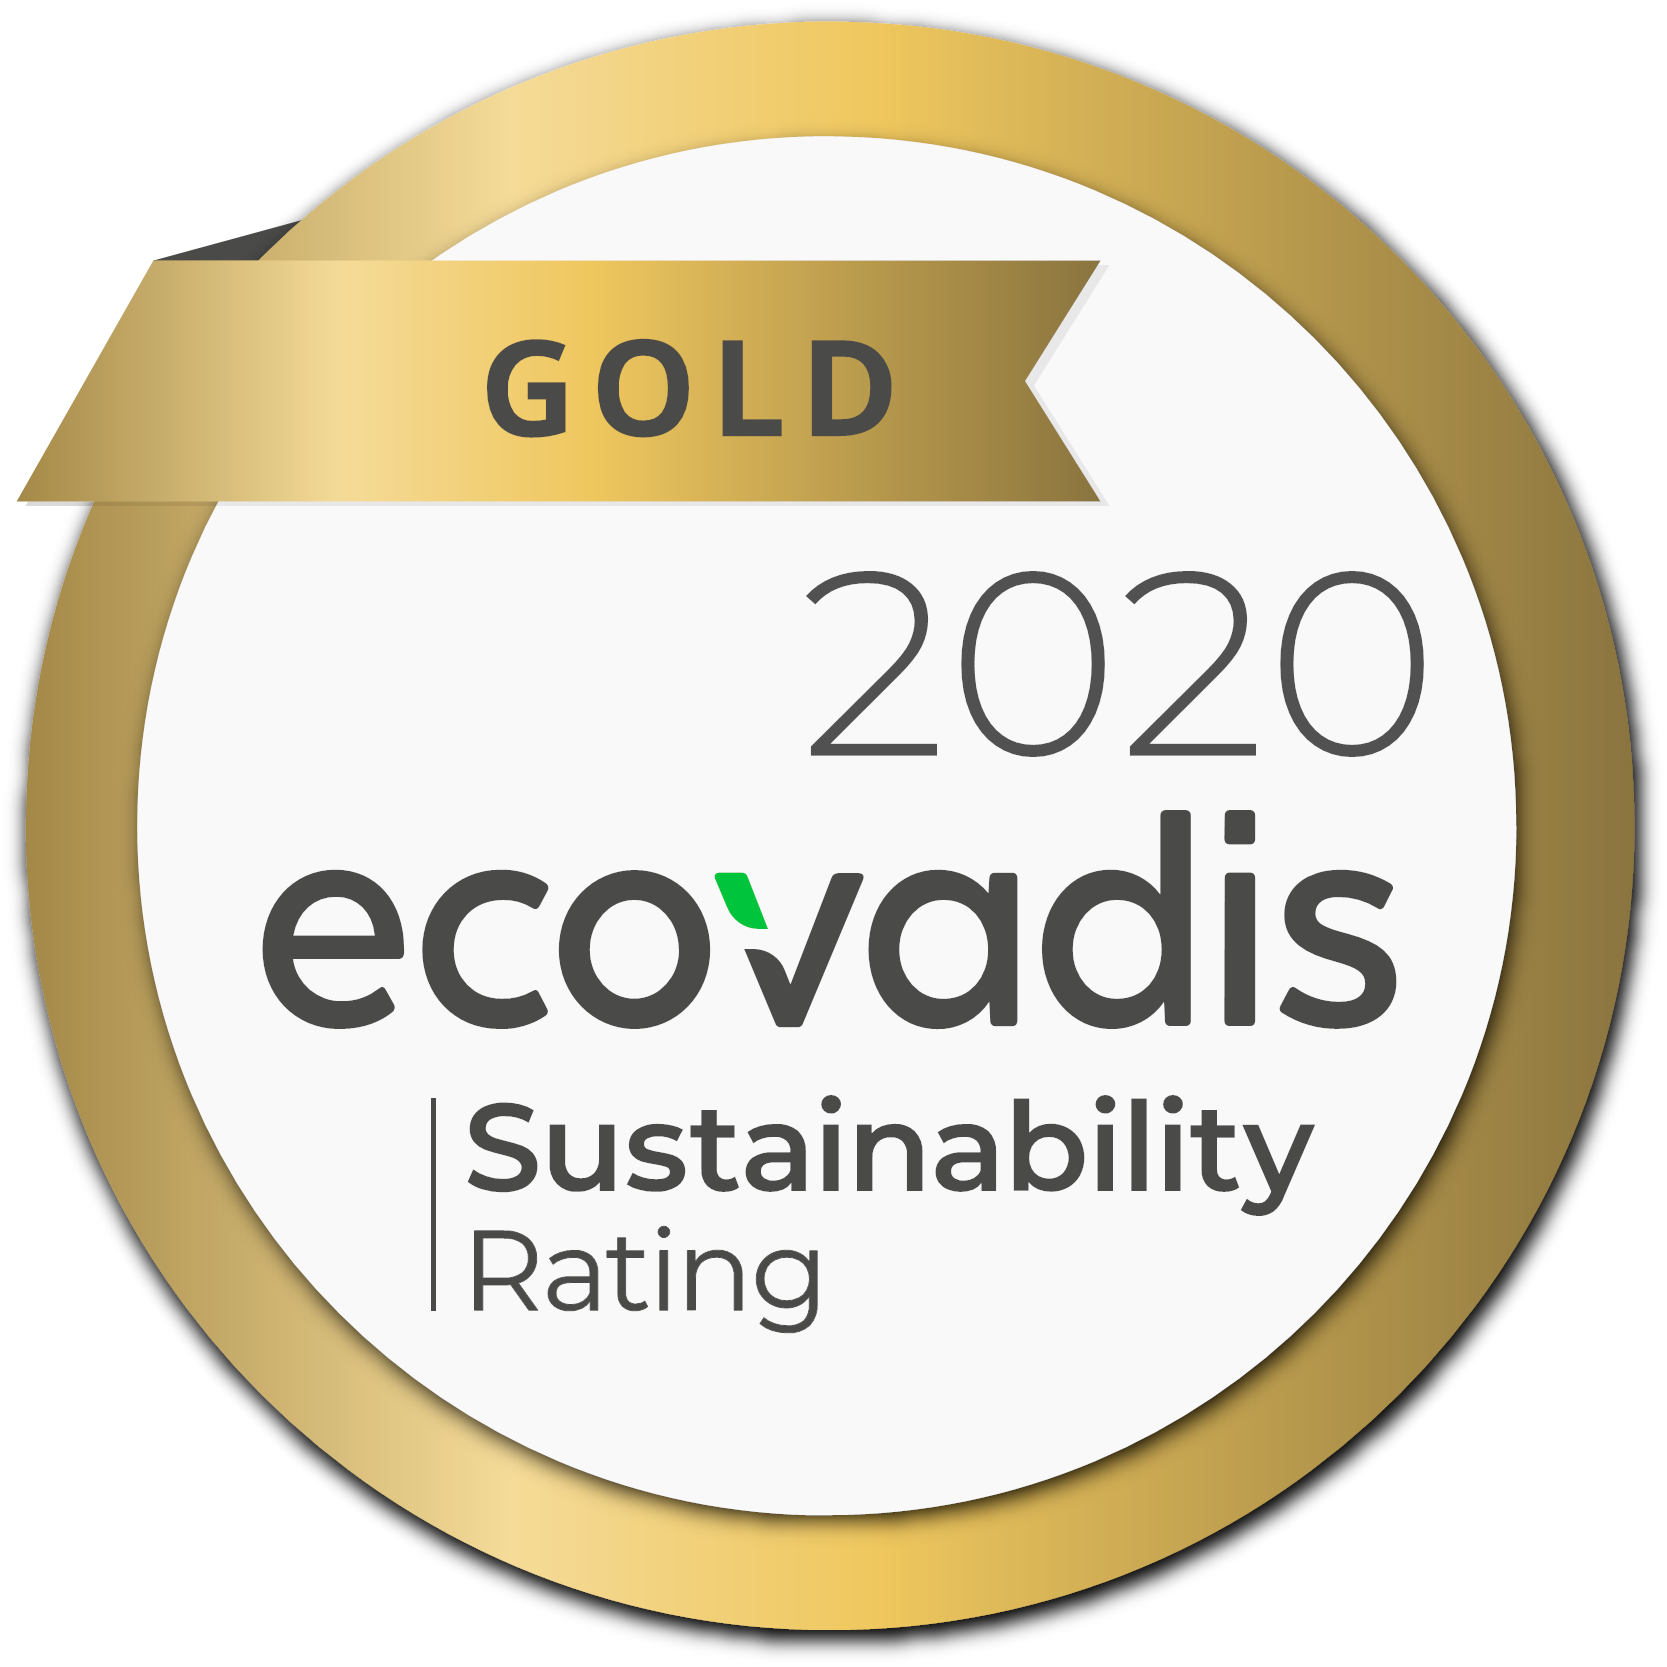 Sustainbility Rating